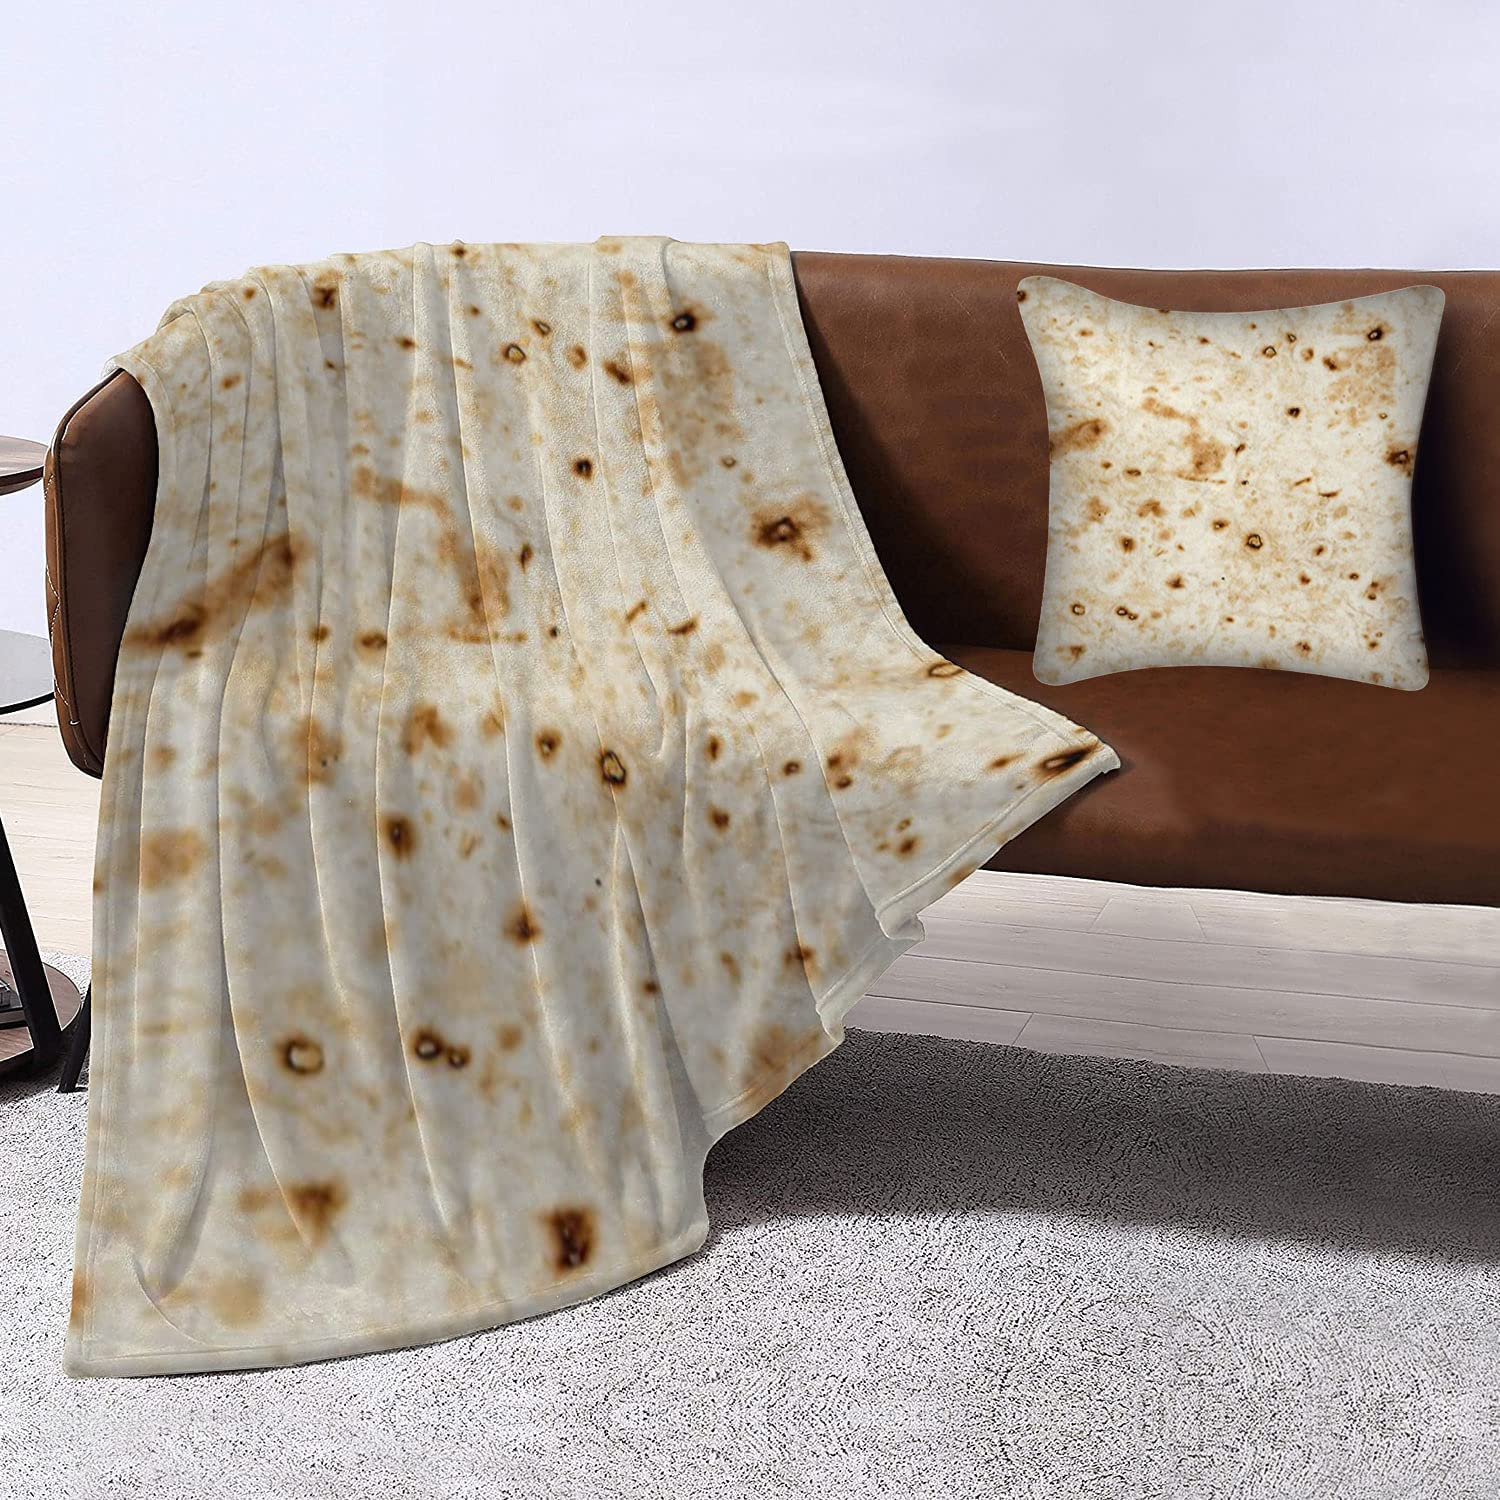 Throw Blanket Bed Warm Now Albuquerque Mall on sale Soft Fleece Sofa for